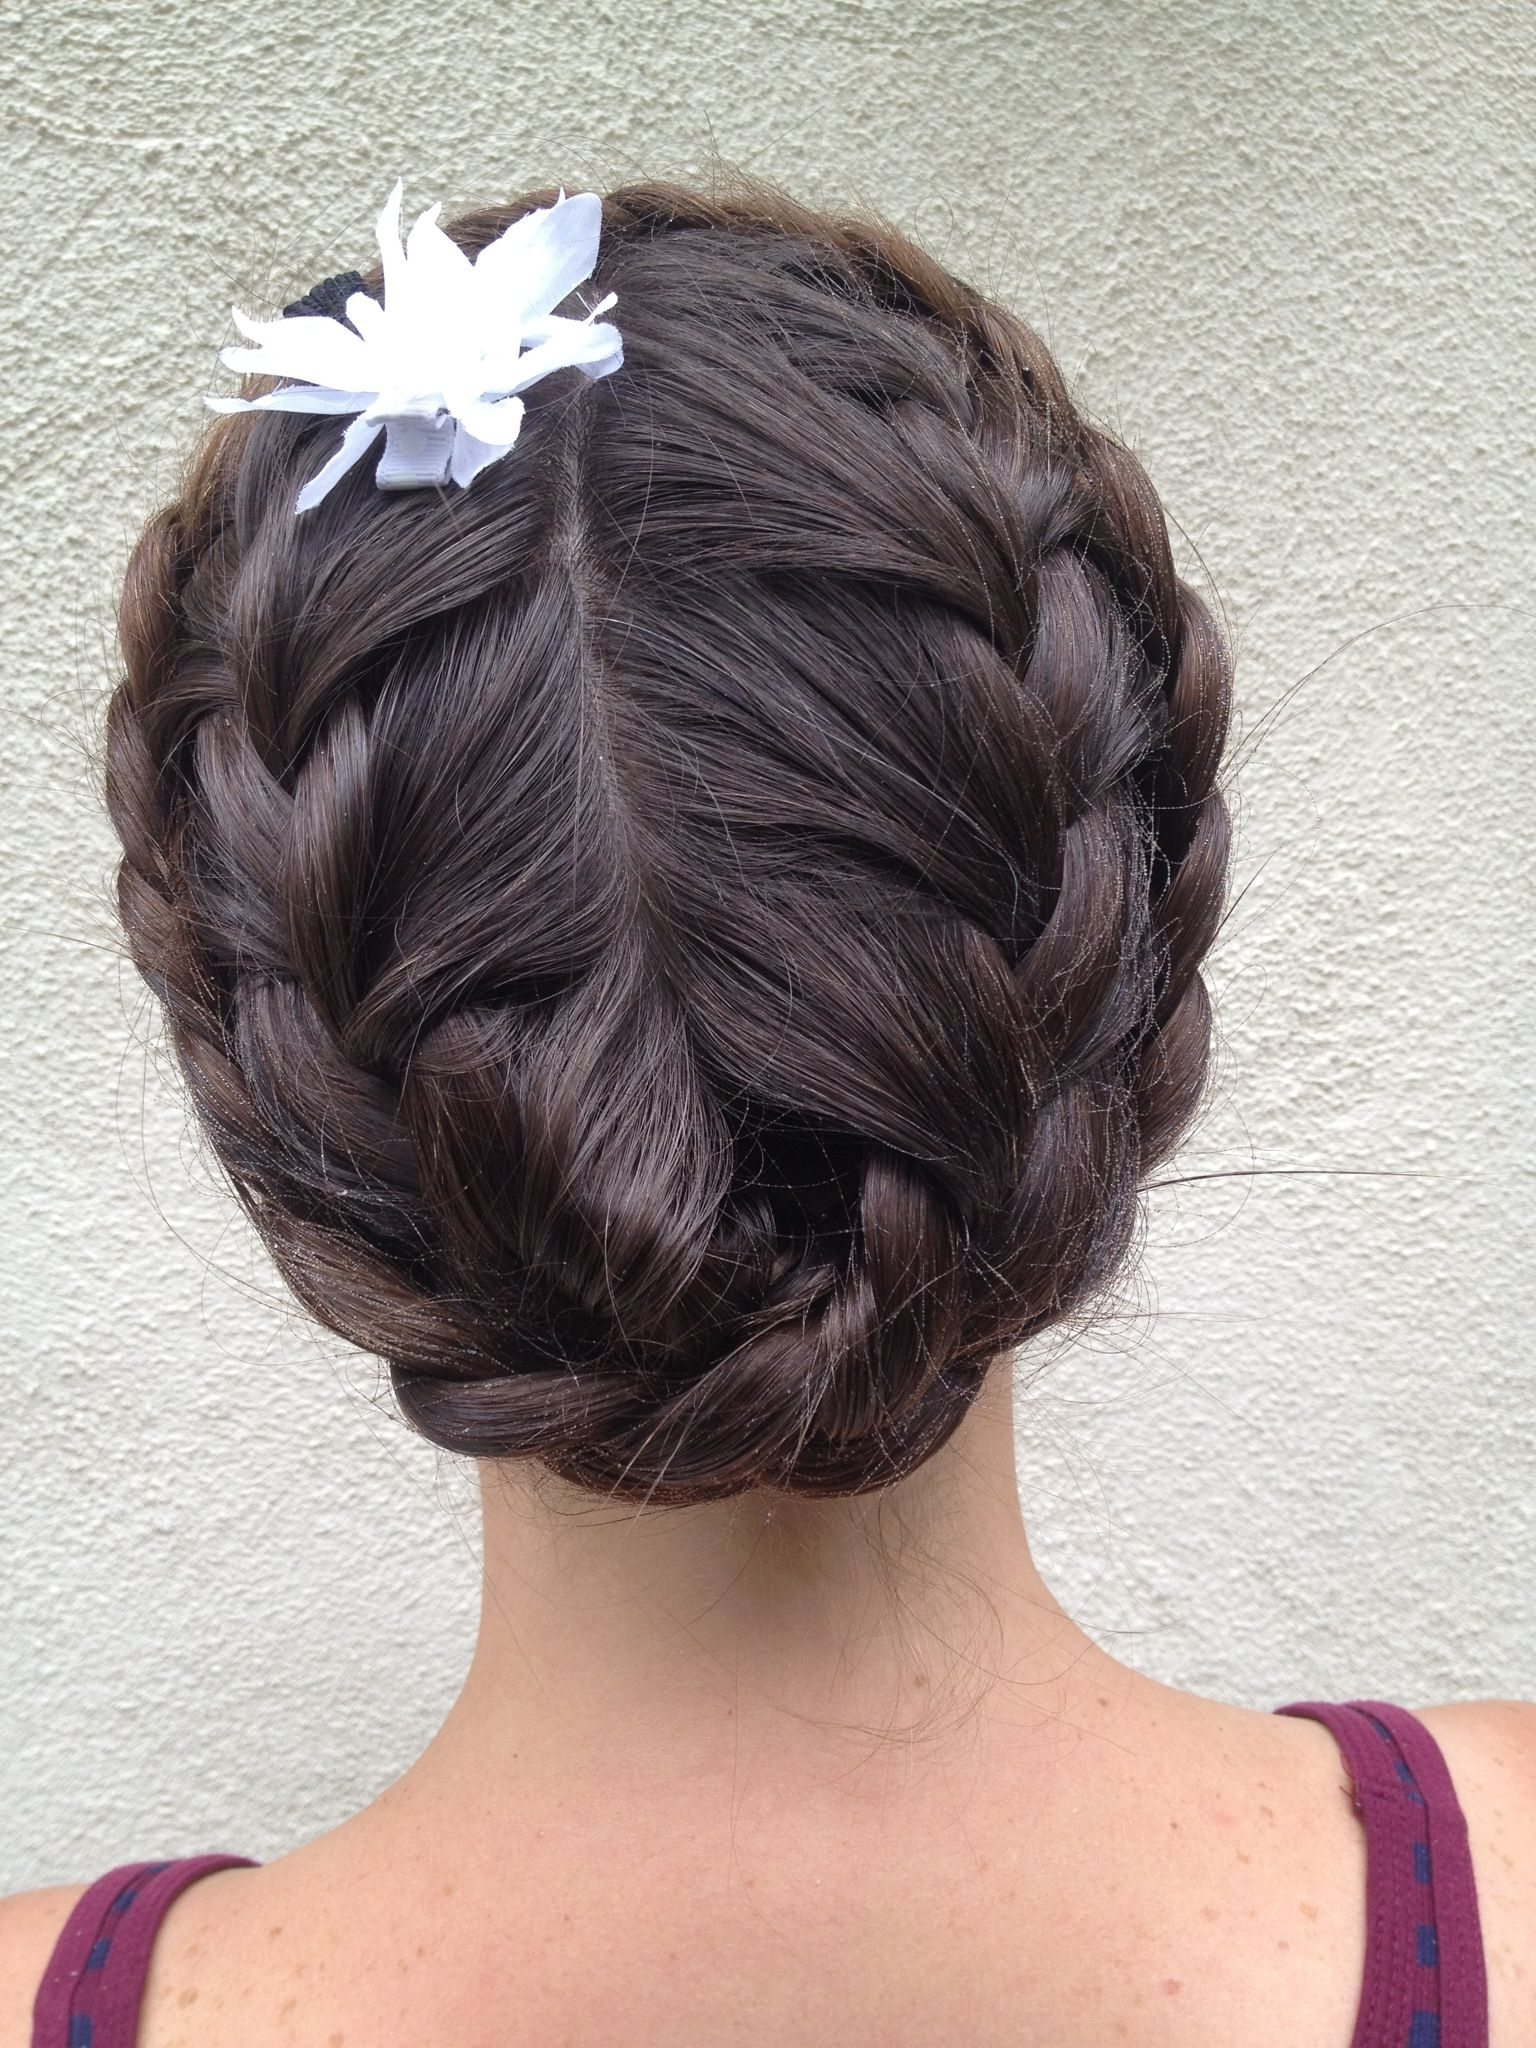 How To Do An Upside Down Double Crown Braid Wish My Hair Was Thick Pertaining To Widely Used Double Crown Braid Prom Hairstyles (View 12 of 20)